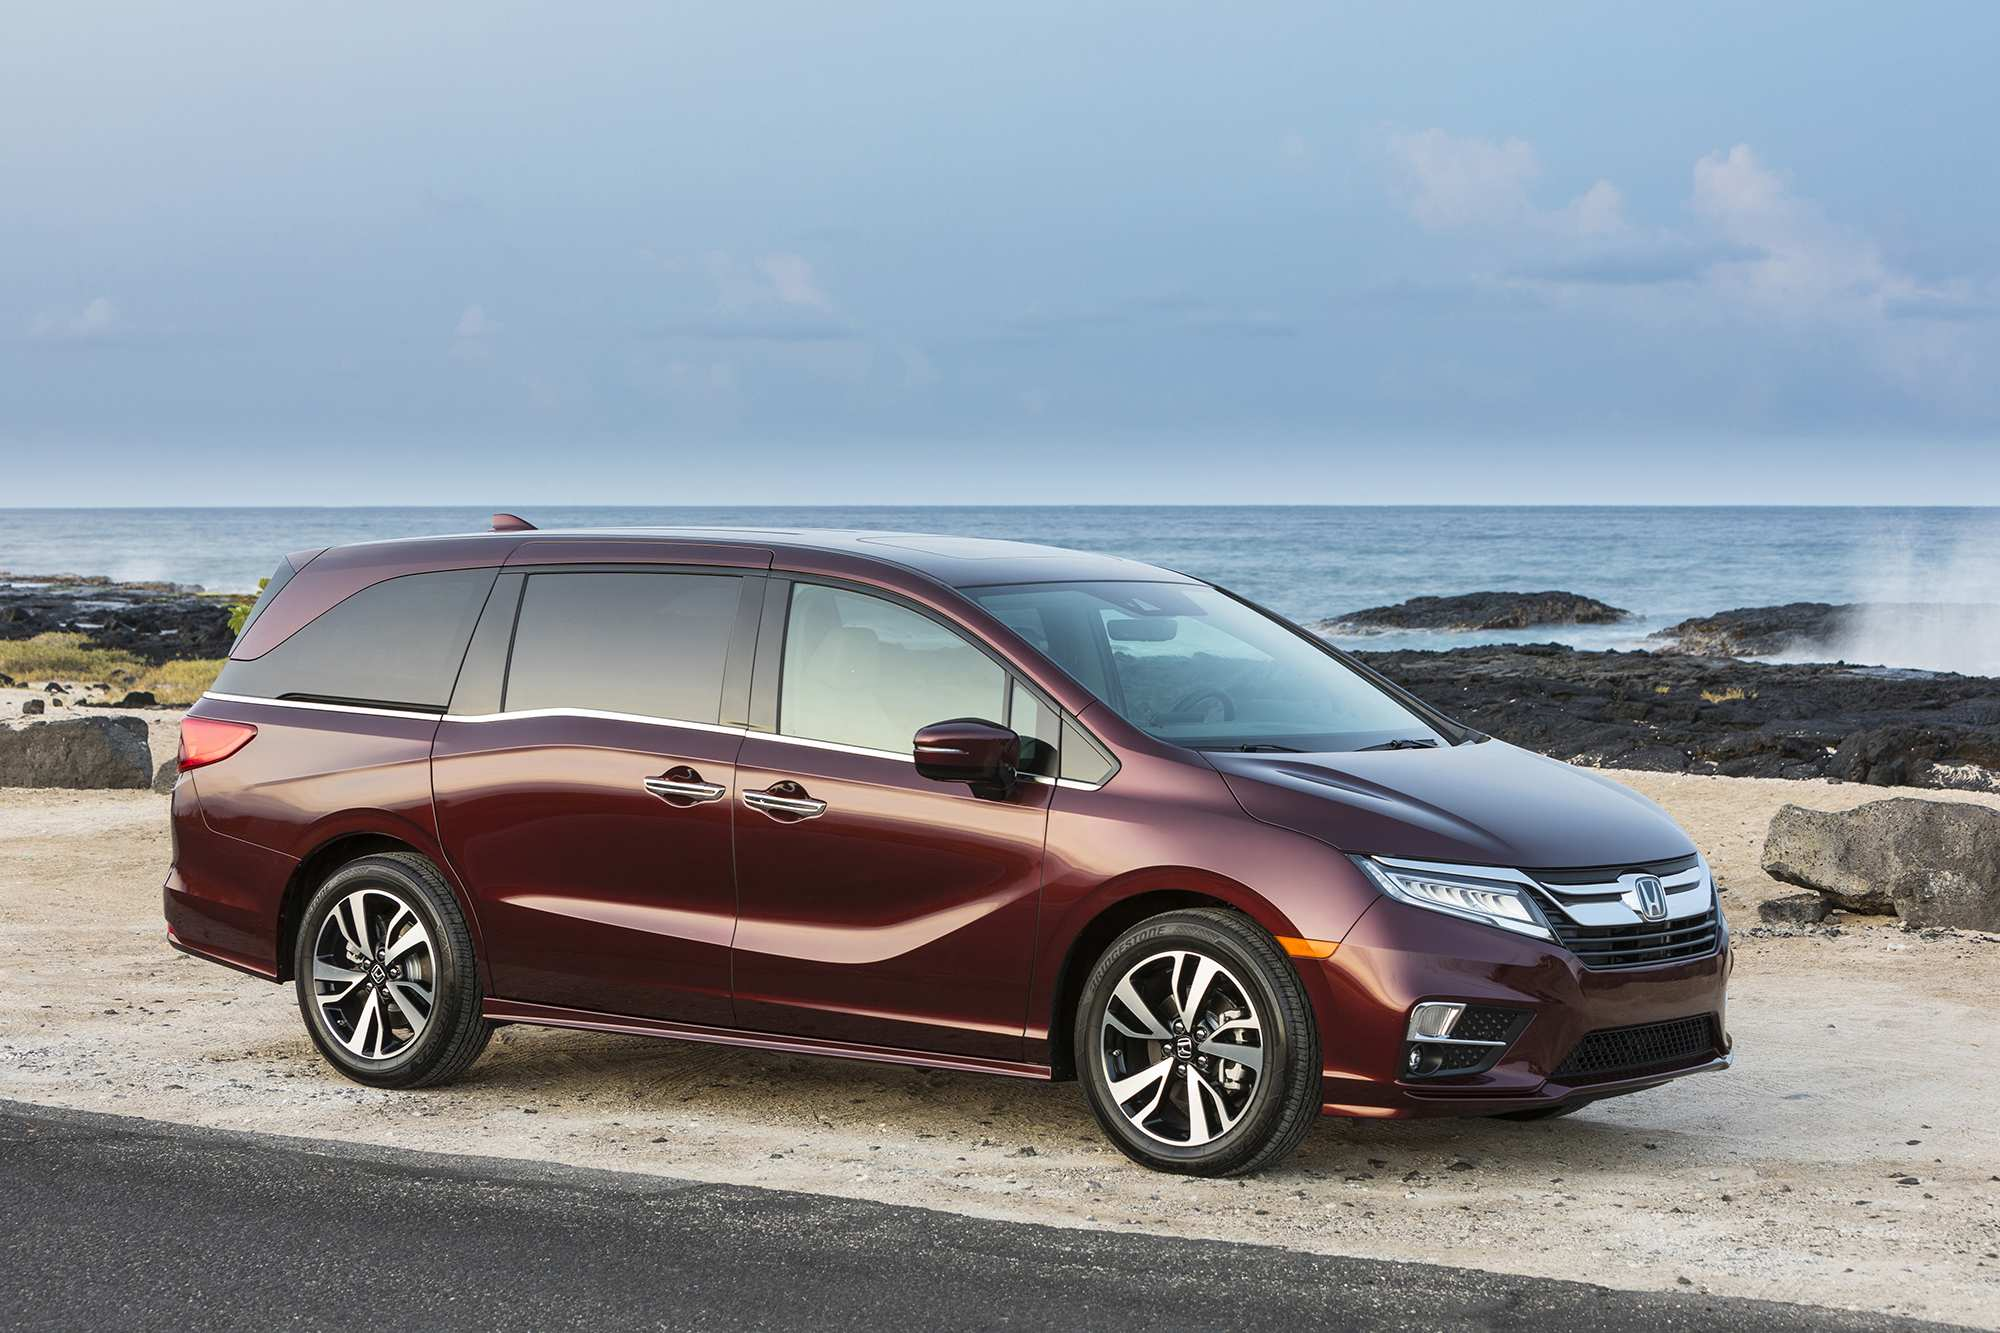 95 All New When Does 2020 Honda Odyssey Come Out Photos by When Does 2020 Honda Odyssey Come Out